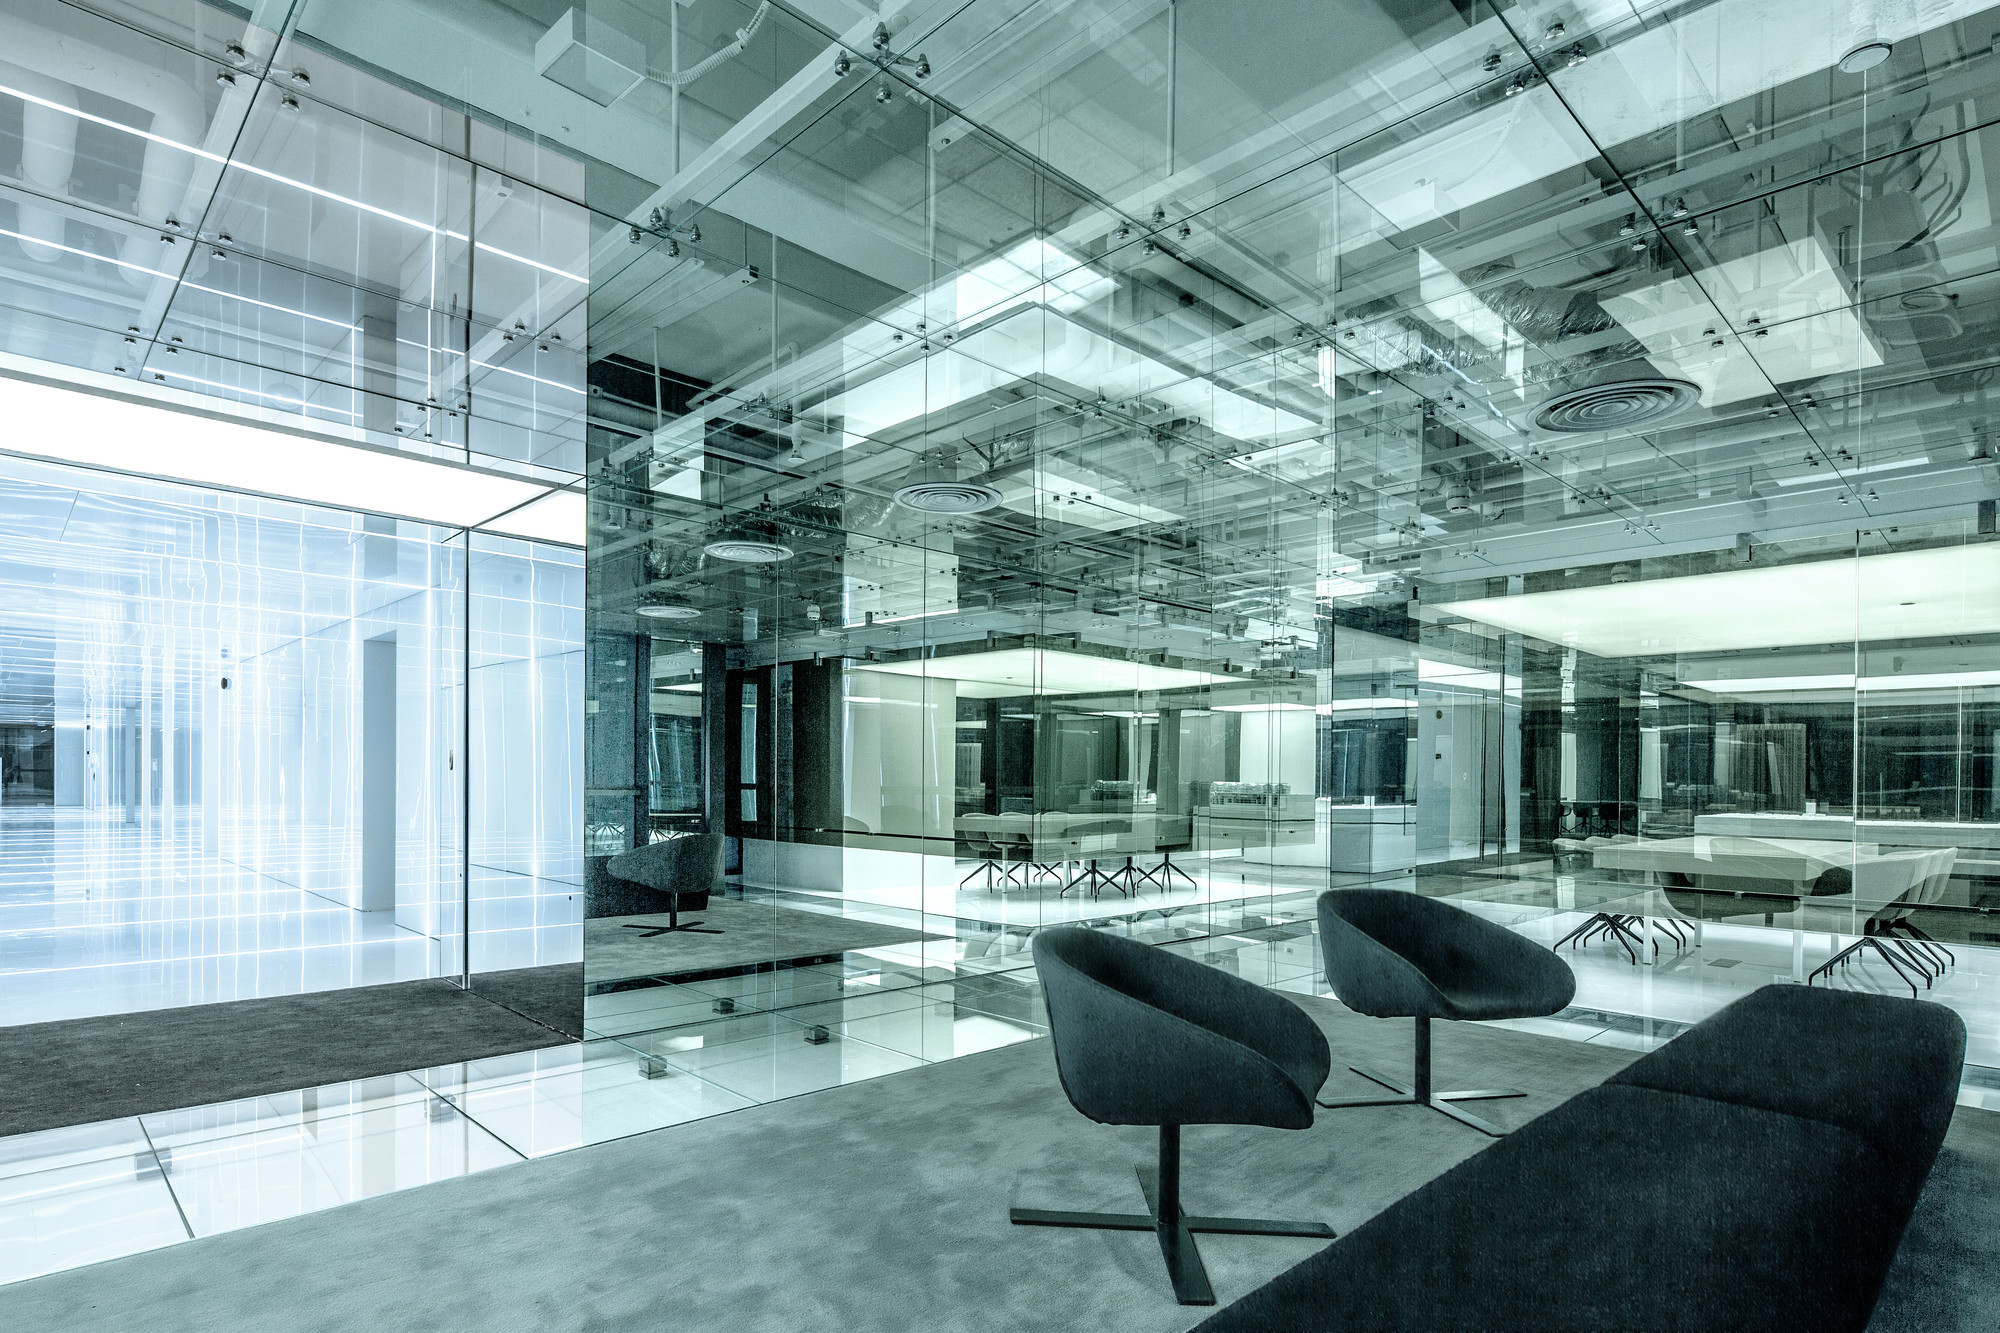 In This House Wall Sticker Gallery Of Glass Office Soho China Aim Architecture 8